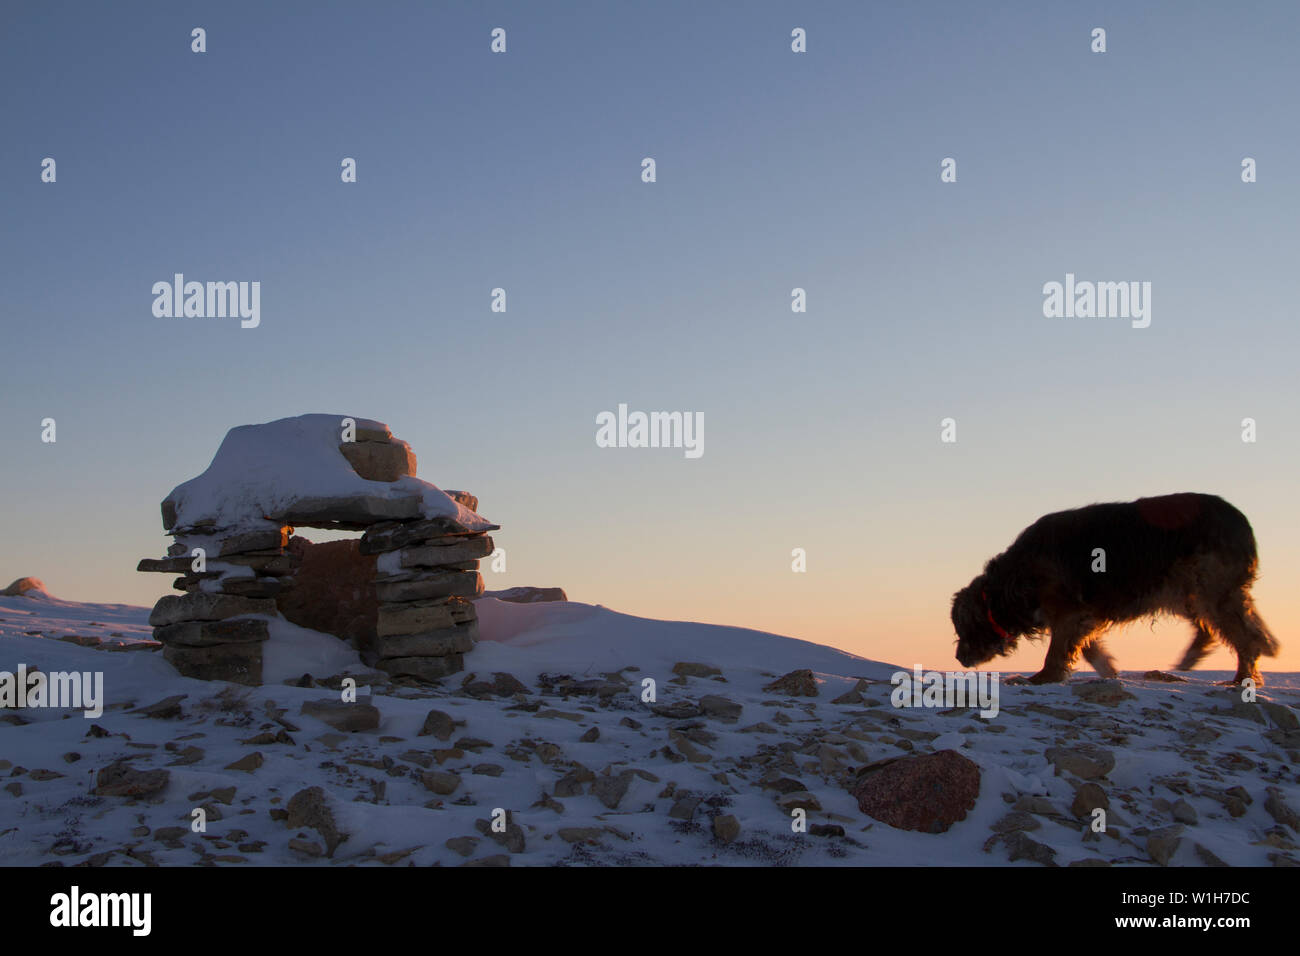 Inuksuk (or spelled Inukshuk) Inuit landmark covered in snow at sunrise found on a hill near the community of Cambridge Bay, Nunavut, Canada with a do - Stock Image